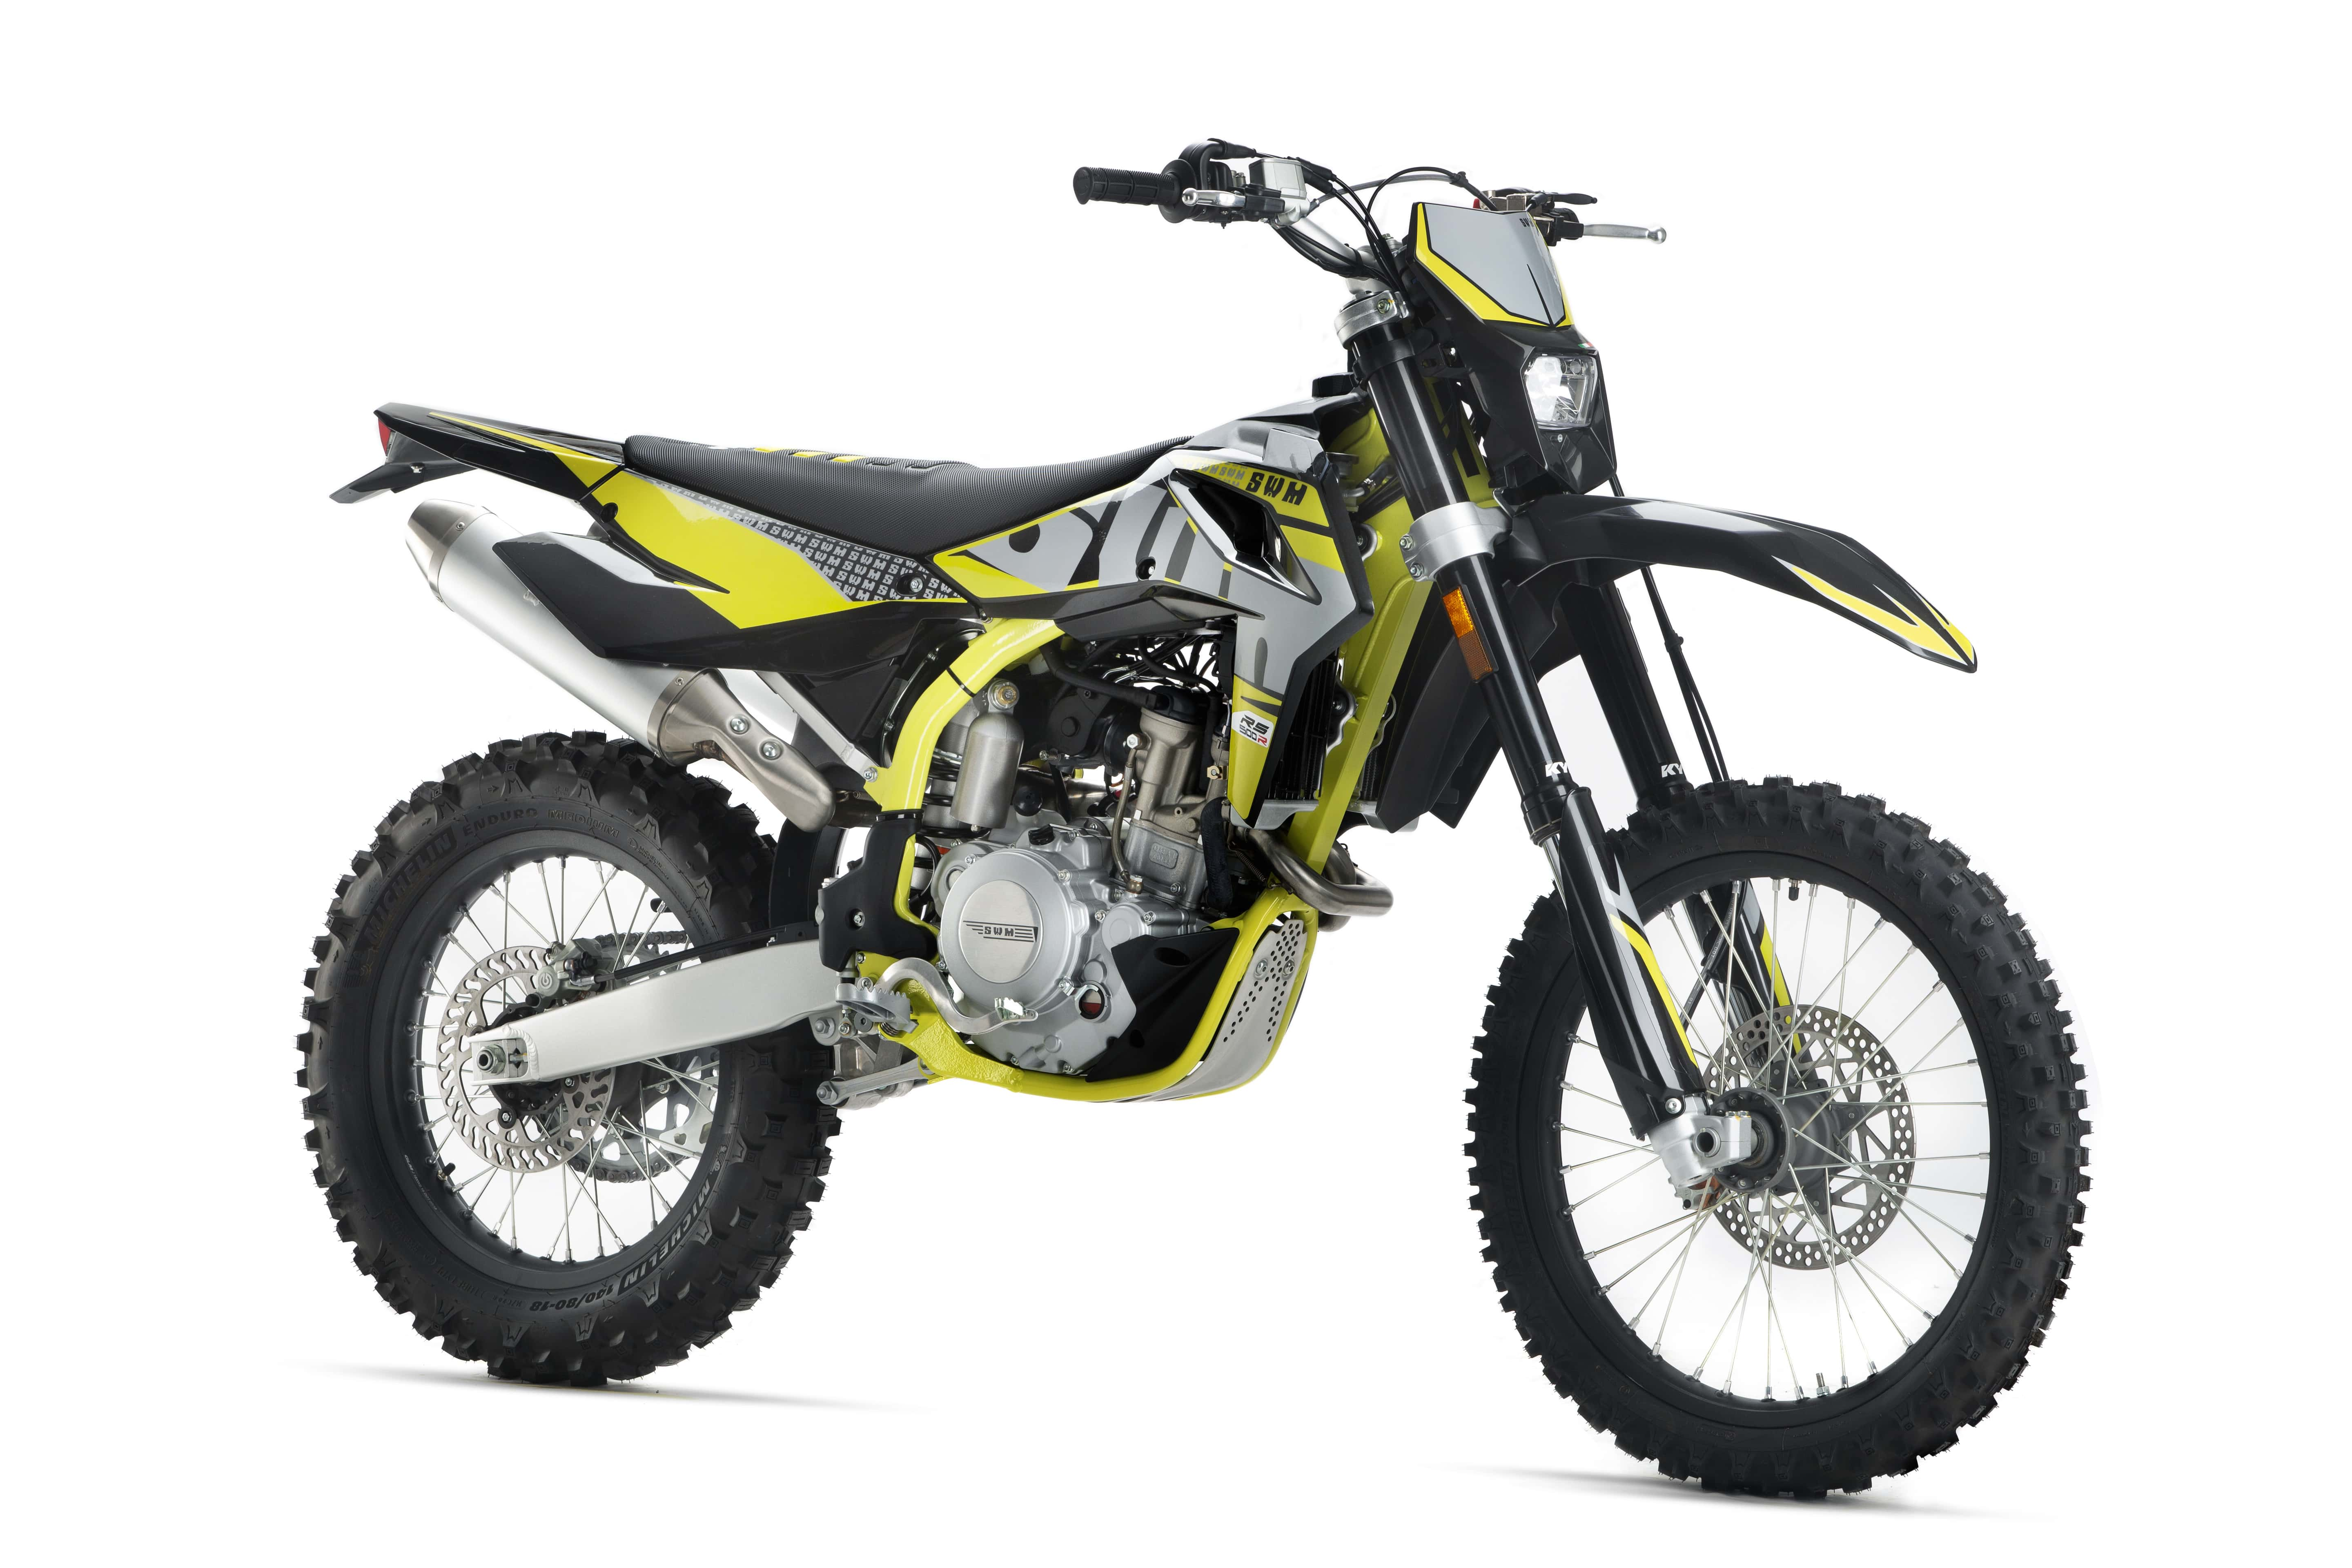 RS SM 125 R | SWM Motorcycles